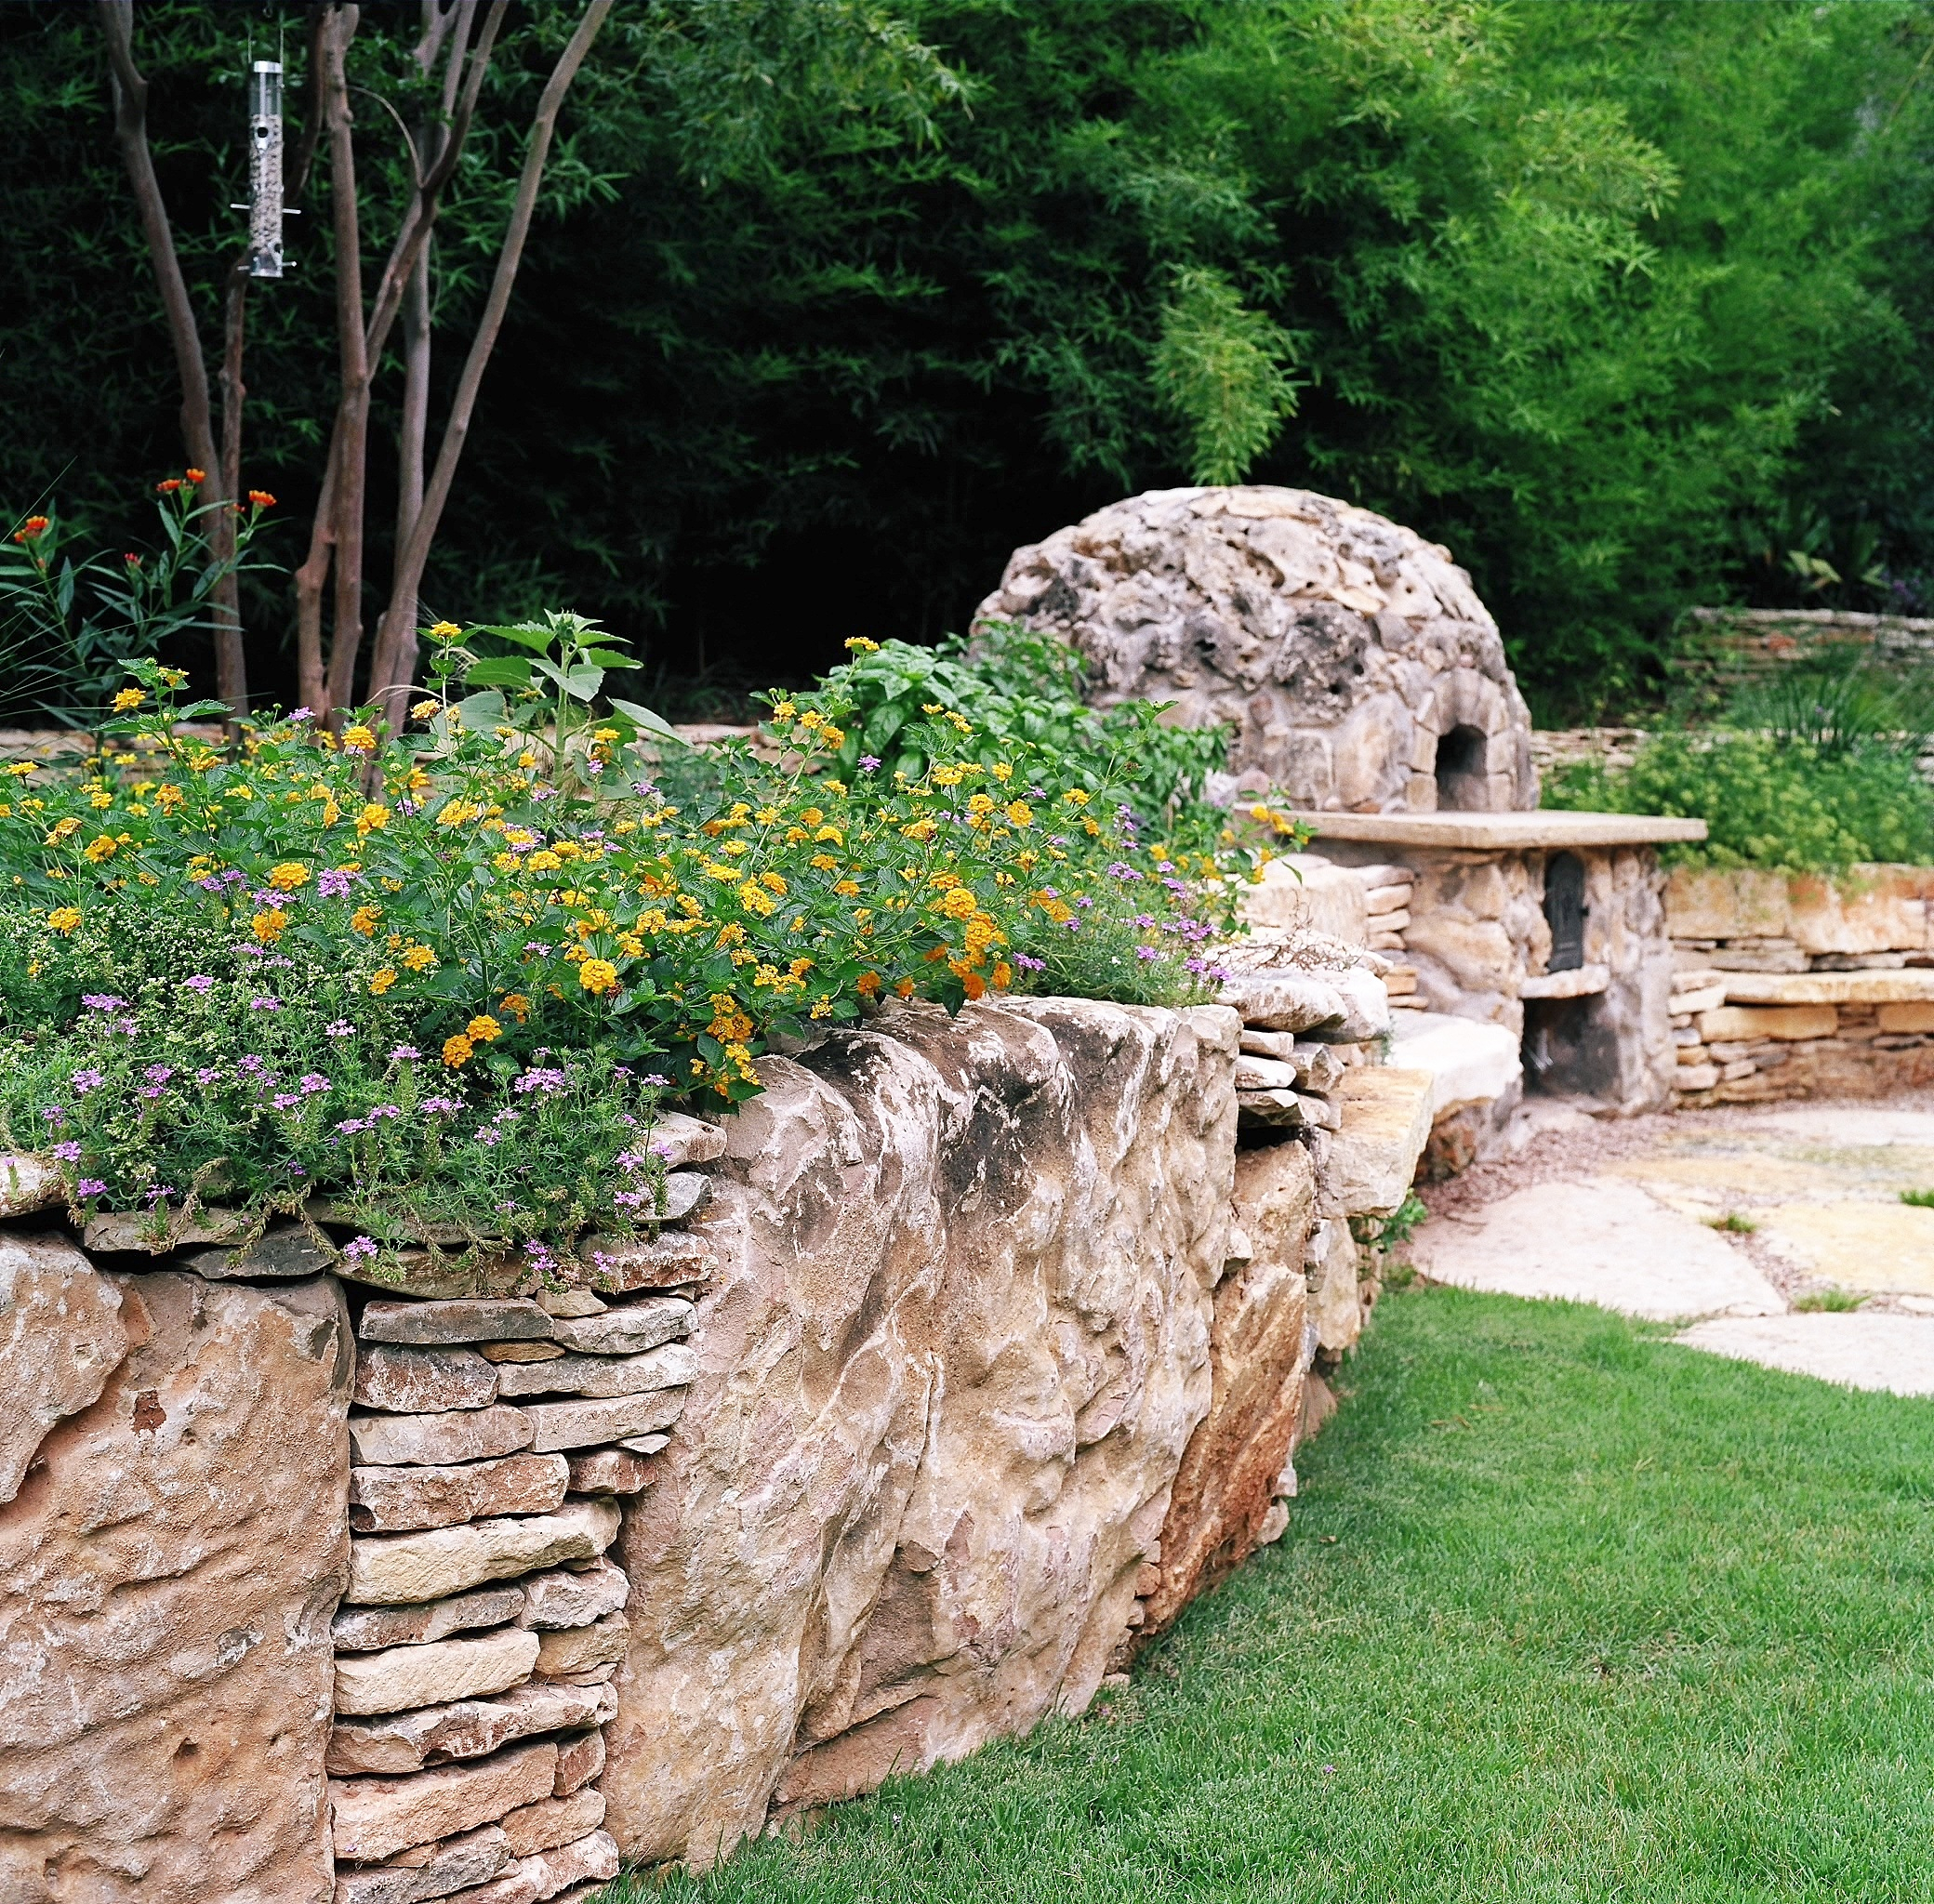 Inspirational Growing Designs, Inc. Custom Landscaping | Personal Spaces, Natural with regard to Natural Landscape Design